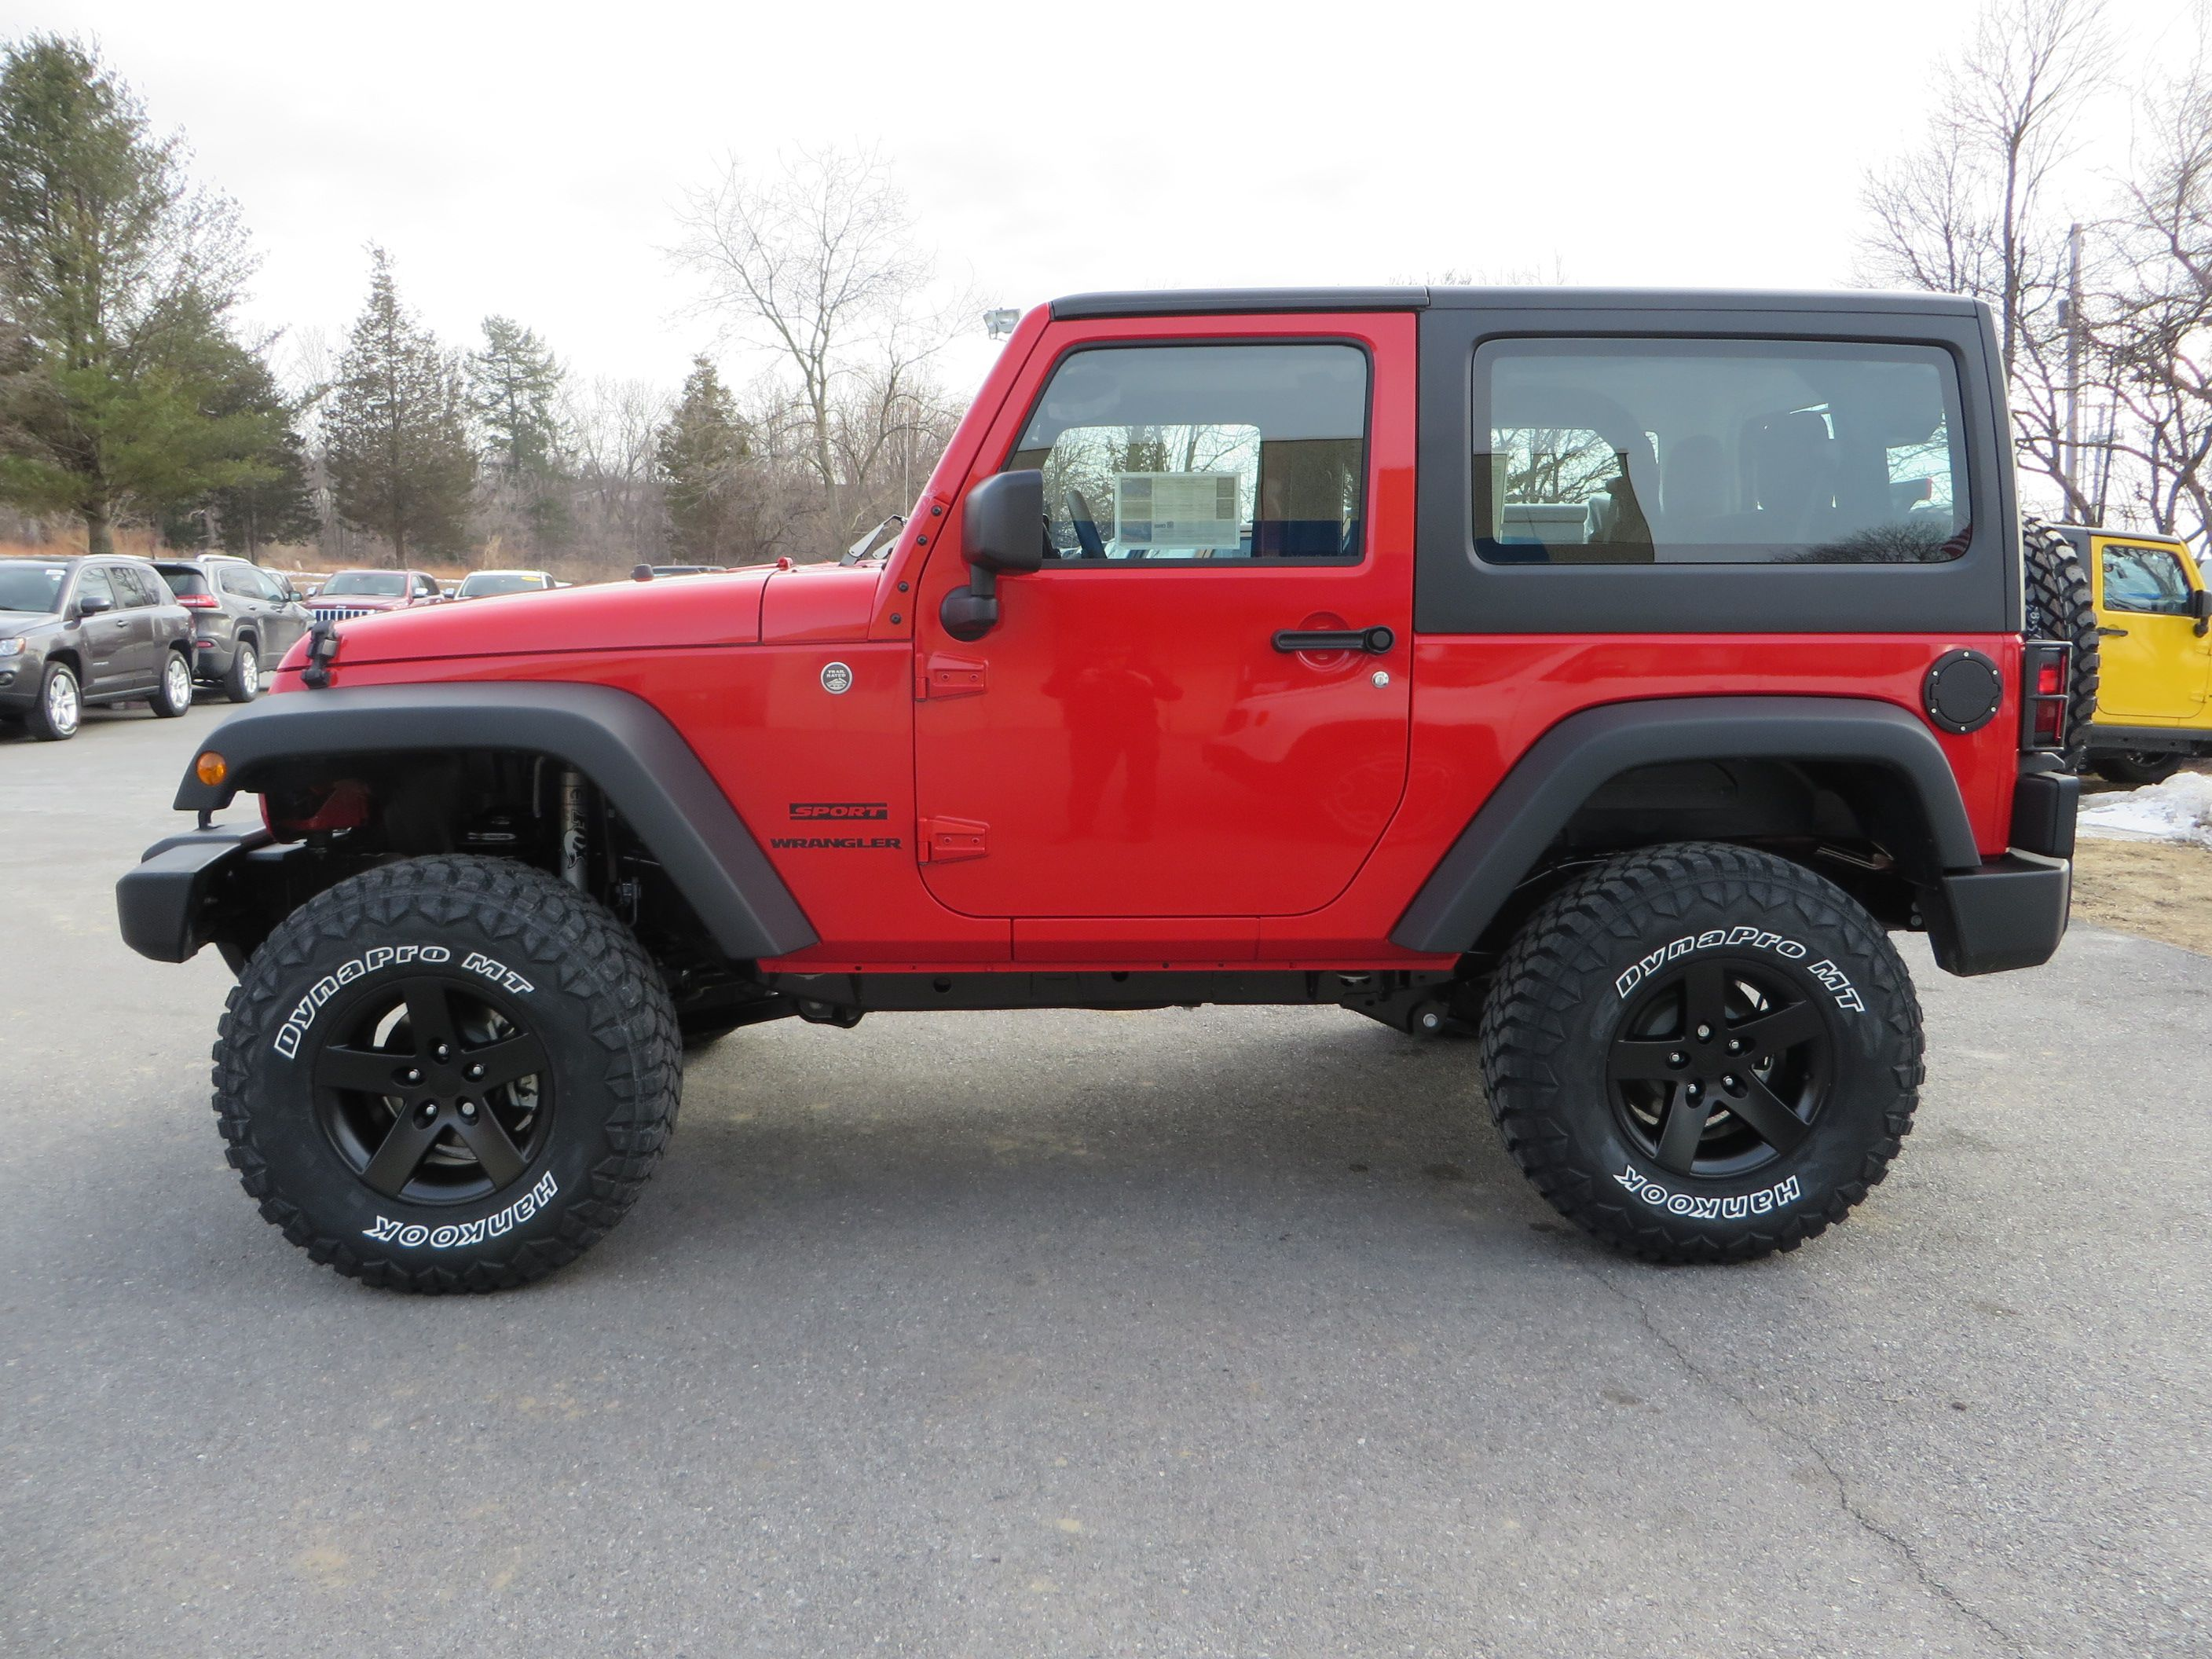 2015 Jeep Wrangler Sport For Sale South Burlington Vt 1c4ajwag1fl641469 2015 Jeep Wrangler 2015 Jeep Wrangler Sport Jeep Wrangler Rubicon